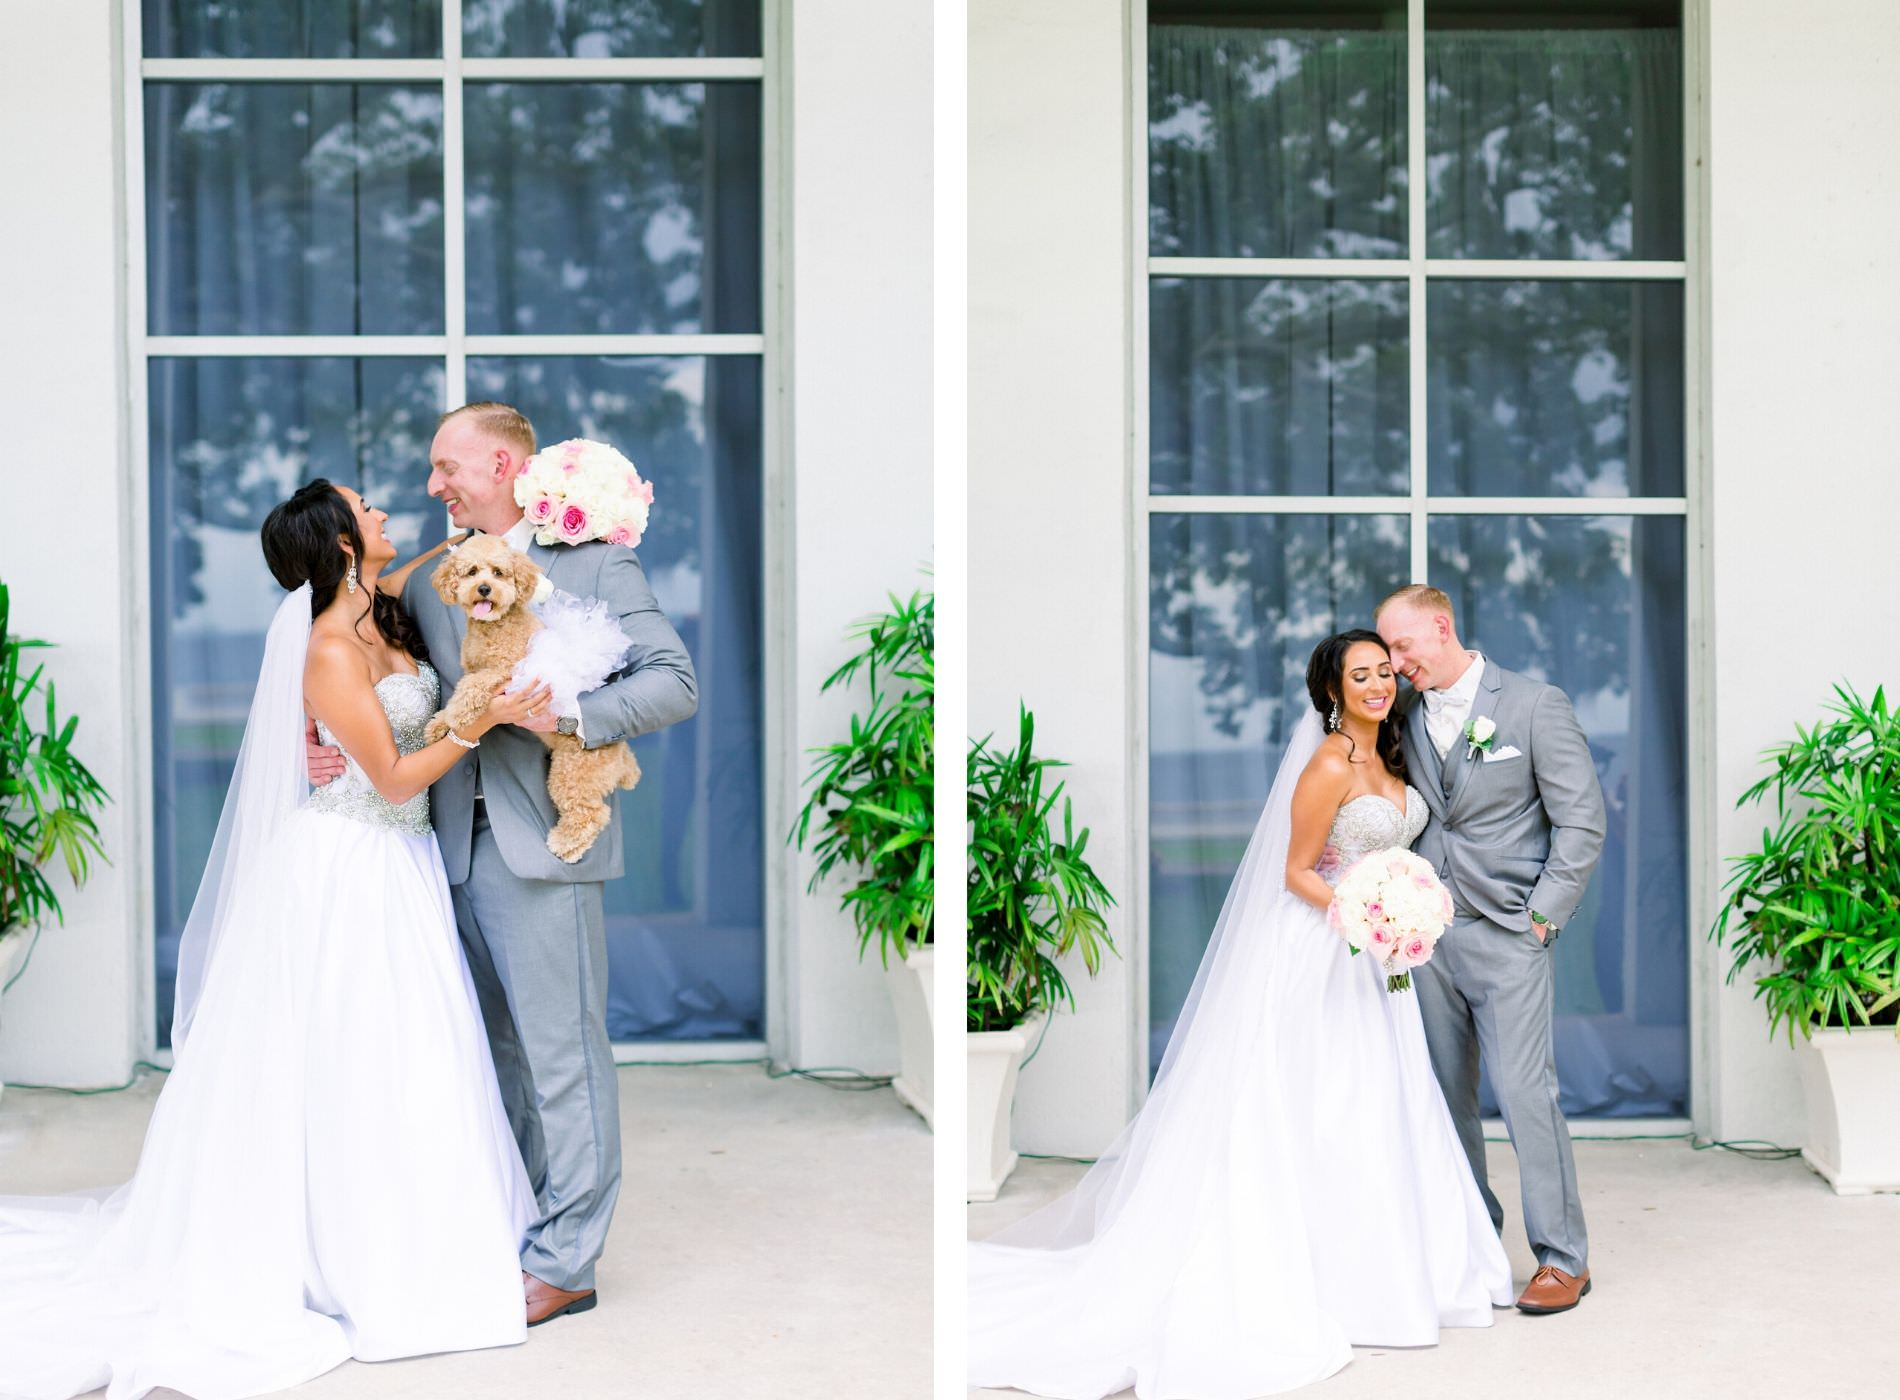 Romantic Bride and Groom Wedding Portrait with Dog Pet Poodle | Wedding Venue Tampa Garden Club | Wedding Photographer Shauna and Jordon Photography | Pet Planner FairyTail Pet Care | Wedding Dress Truly Forever Bridal